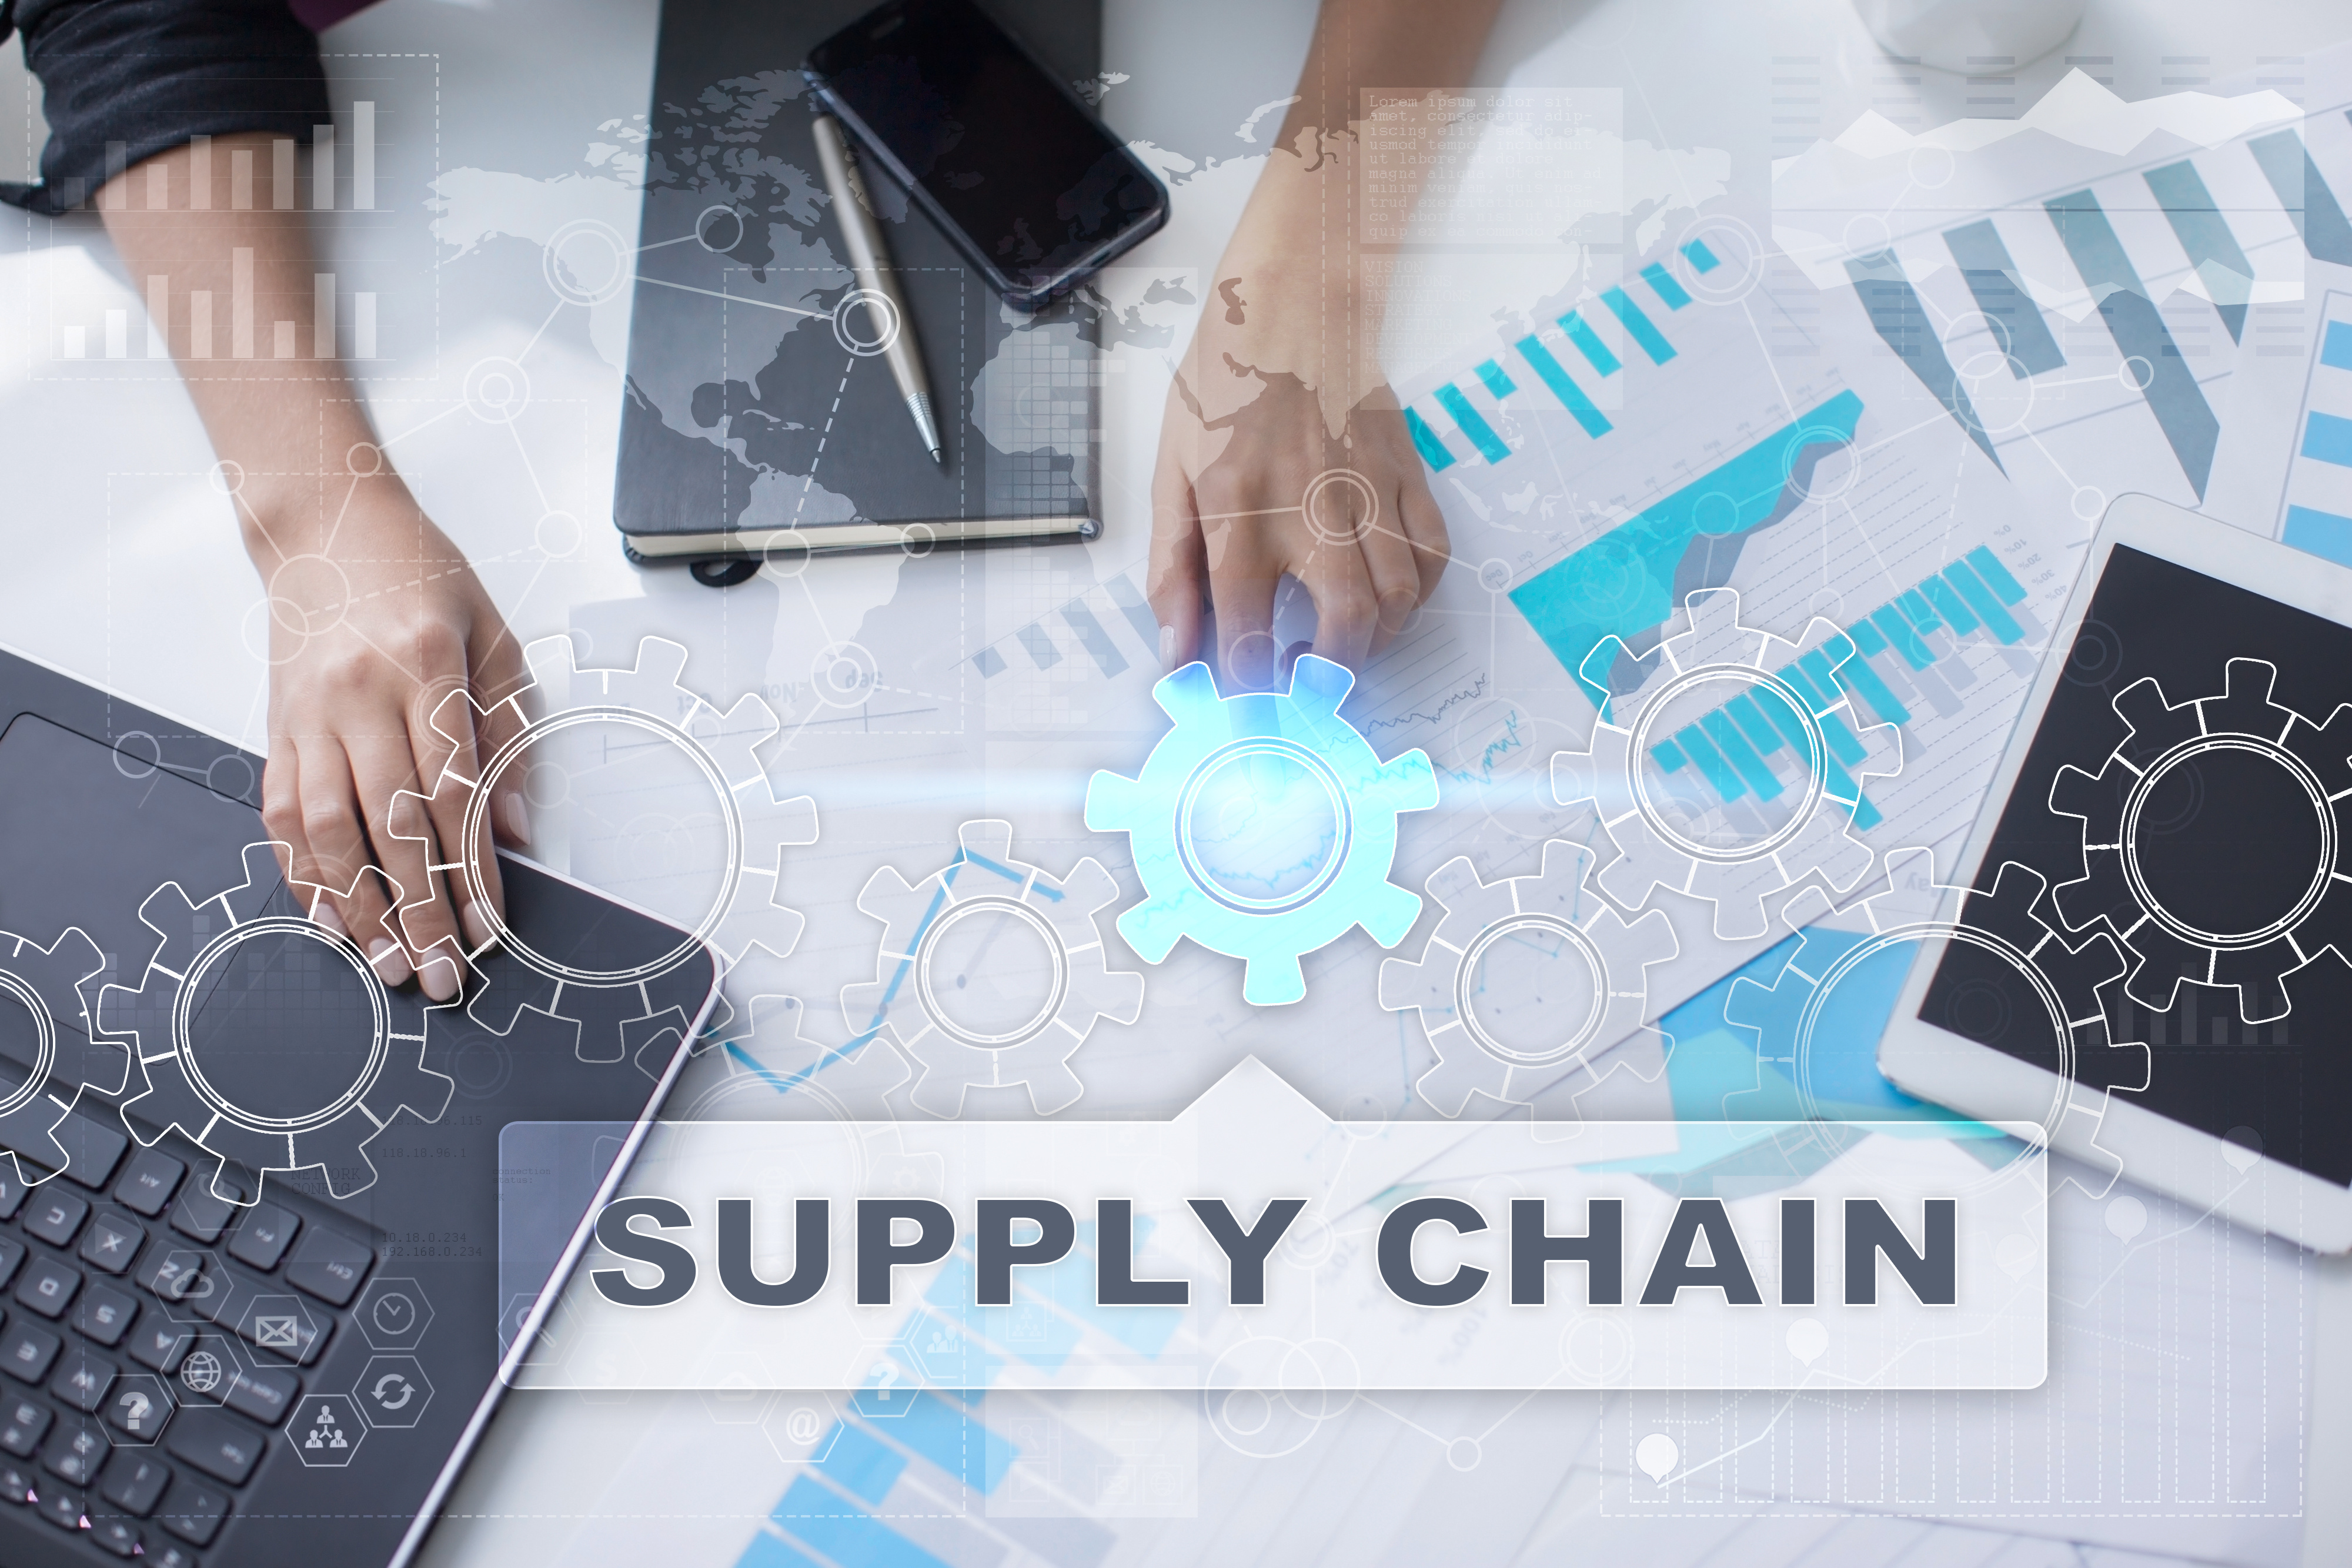 Supply chain management with freight management